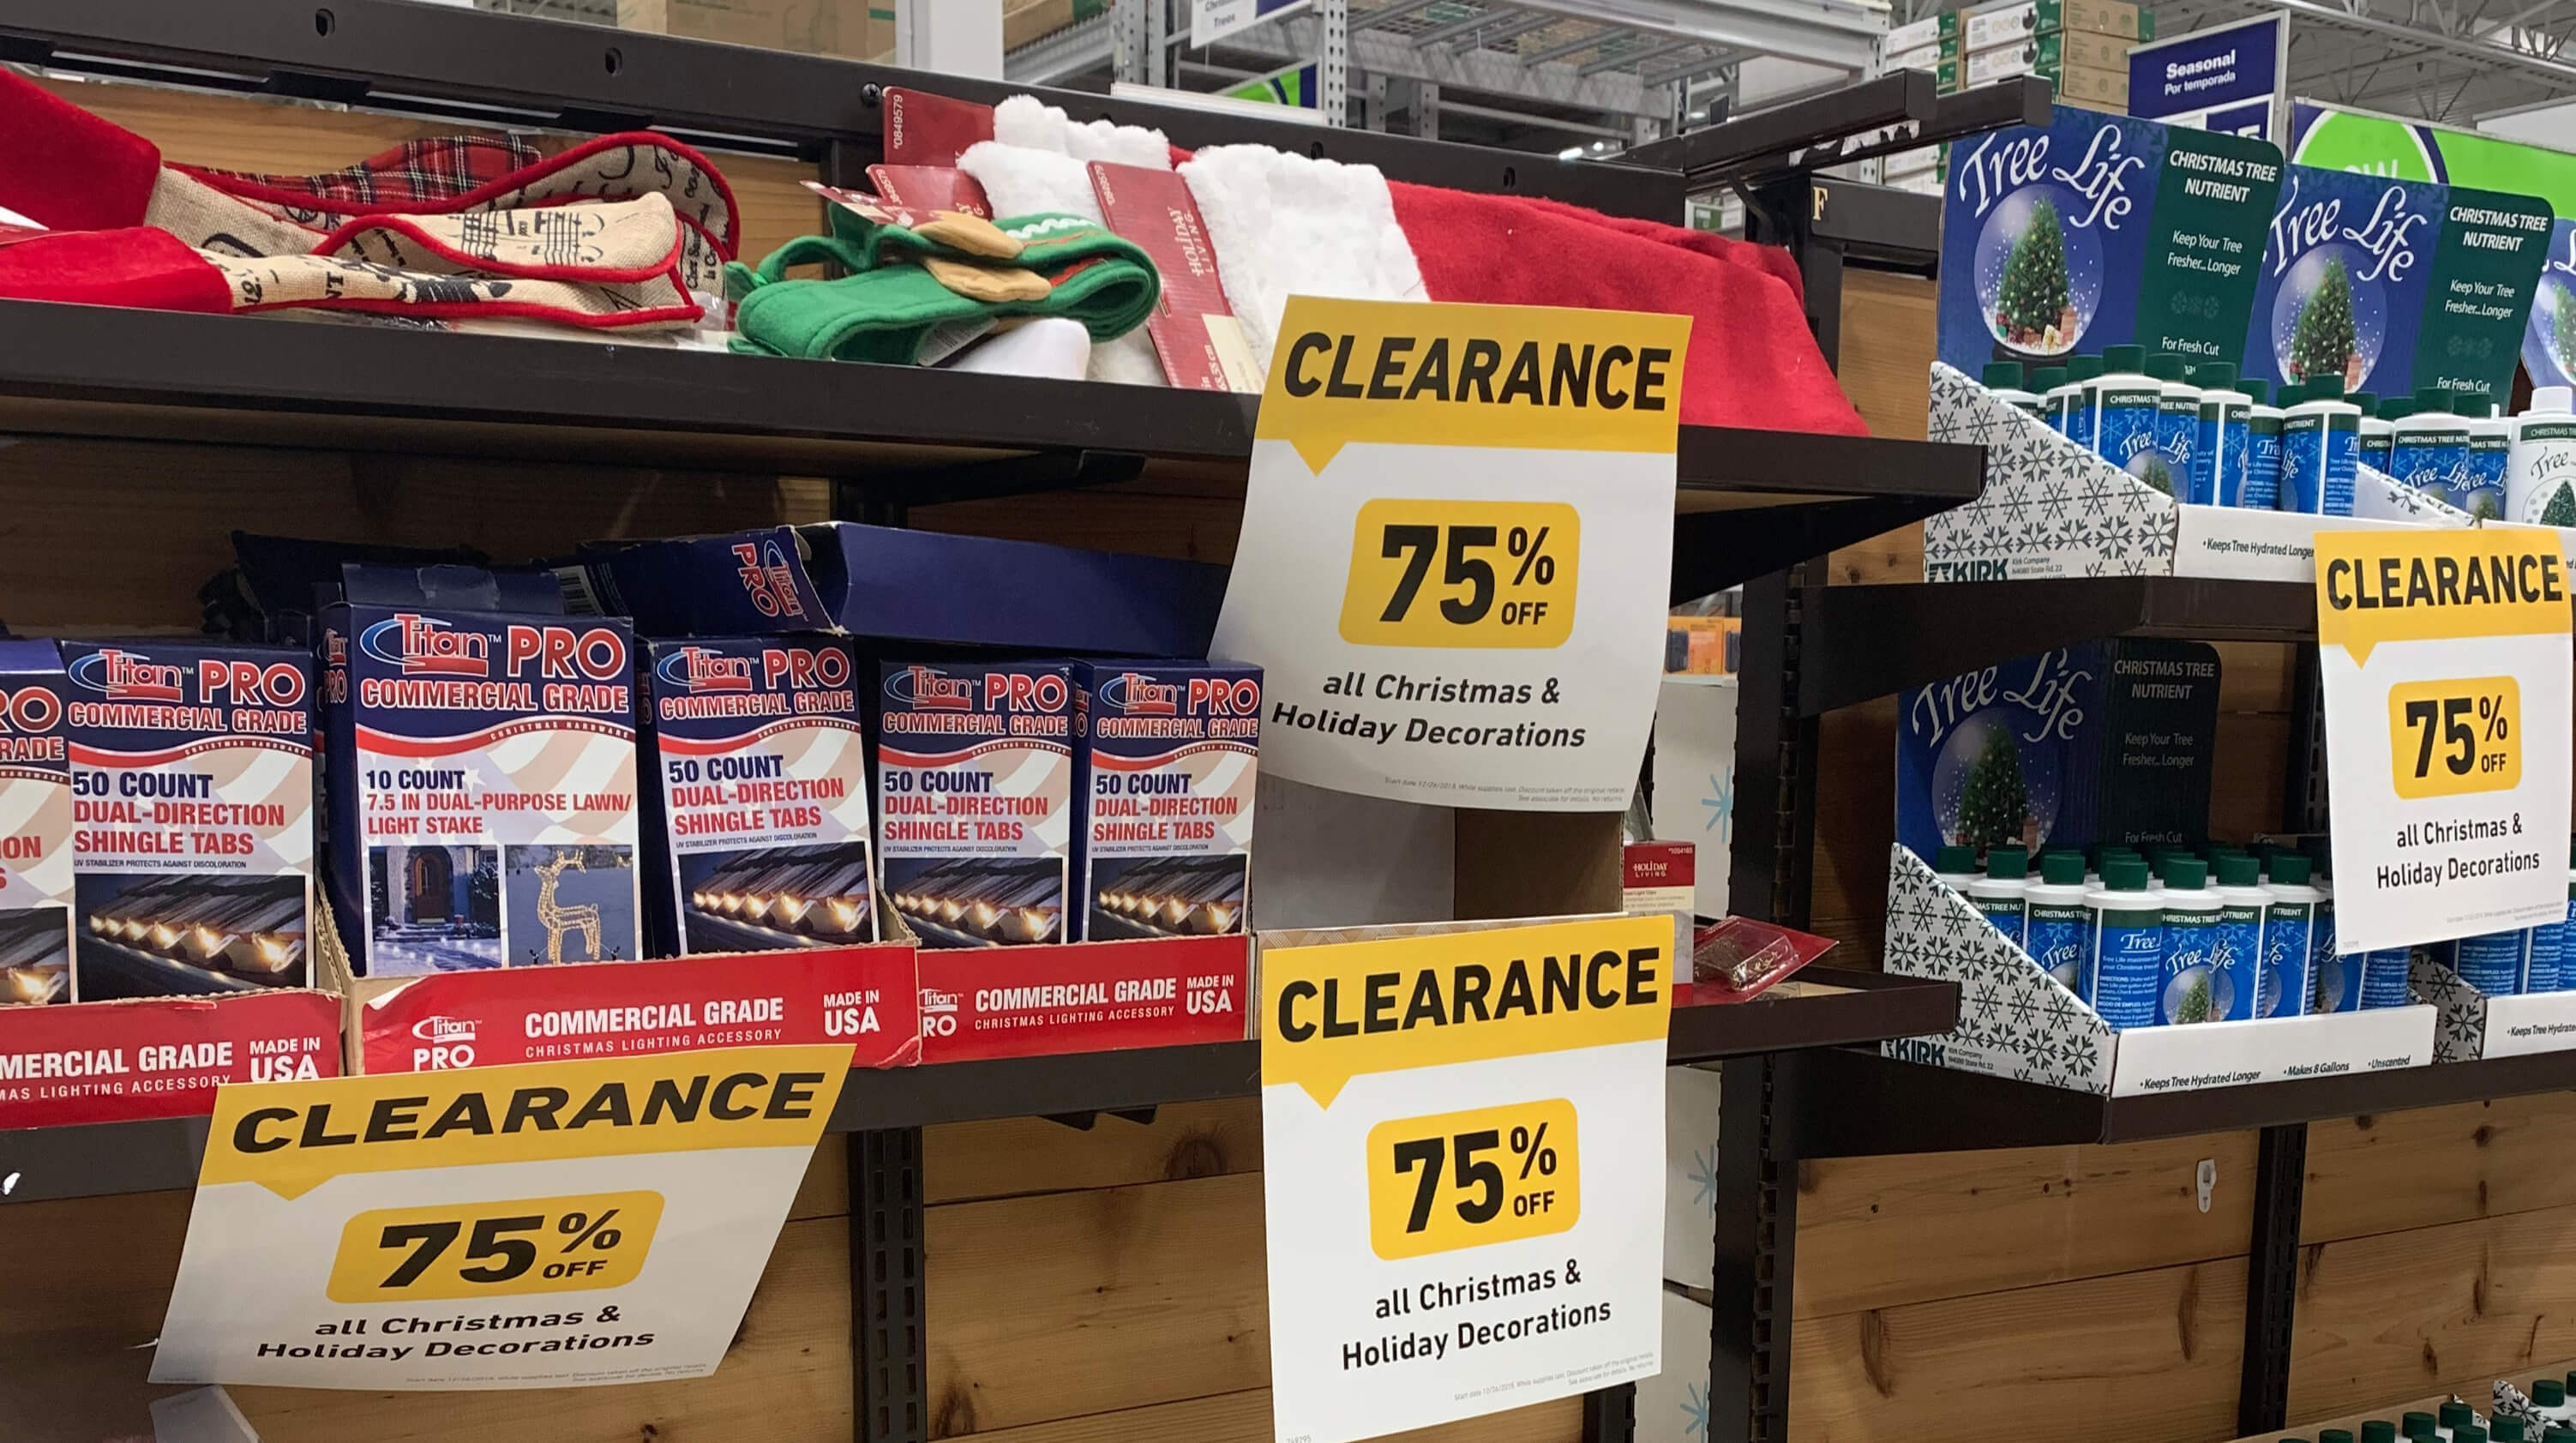 Lowes After Christmas Clearance 2018 –